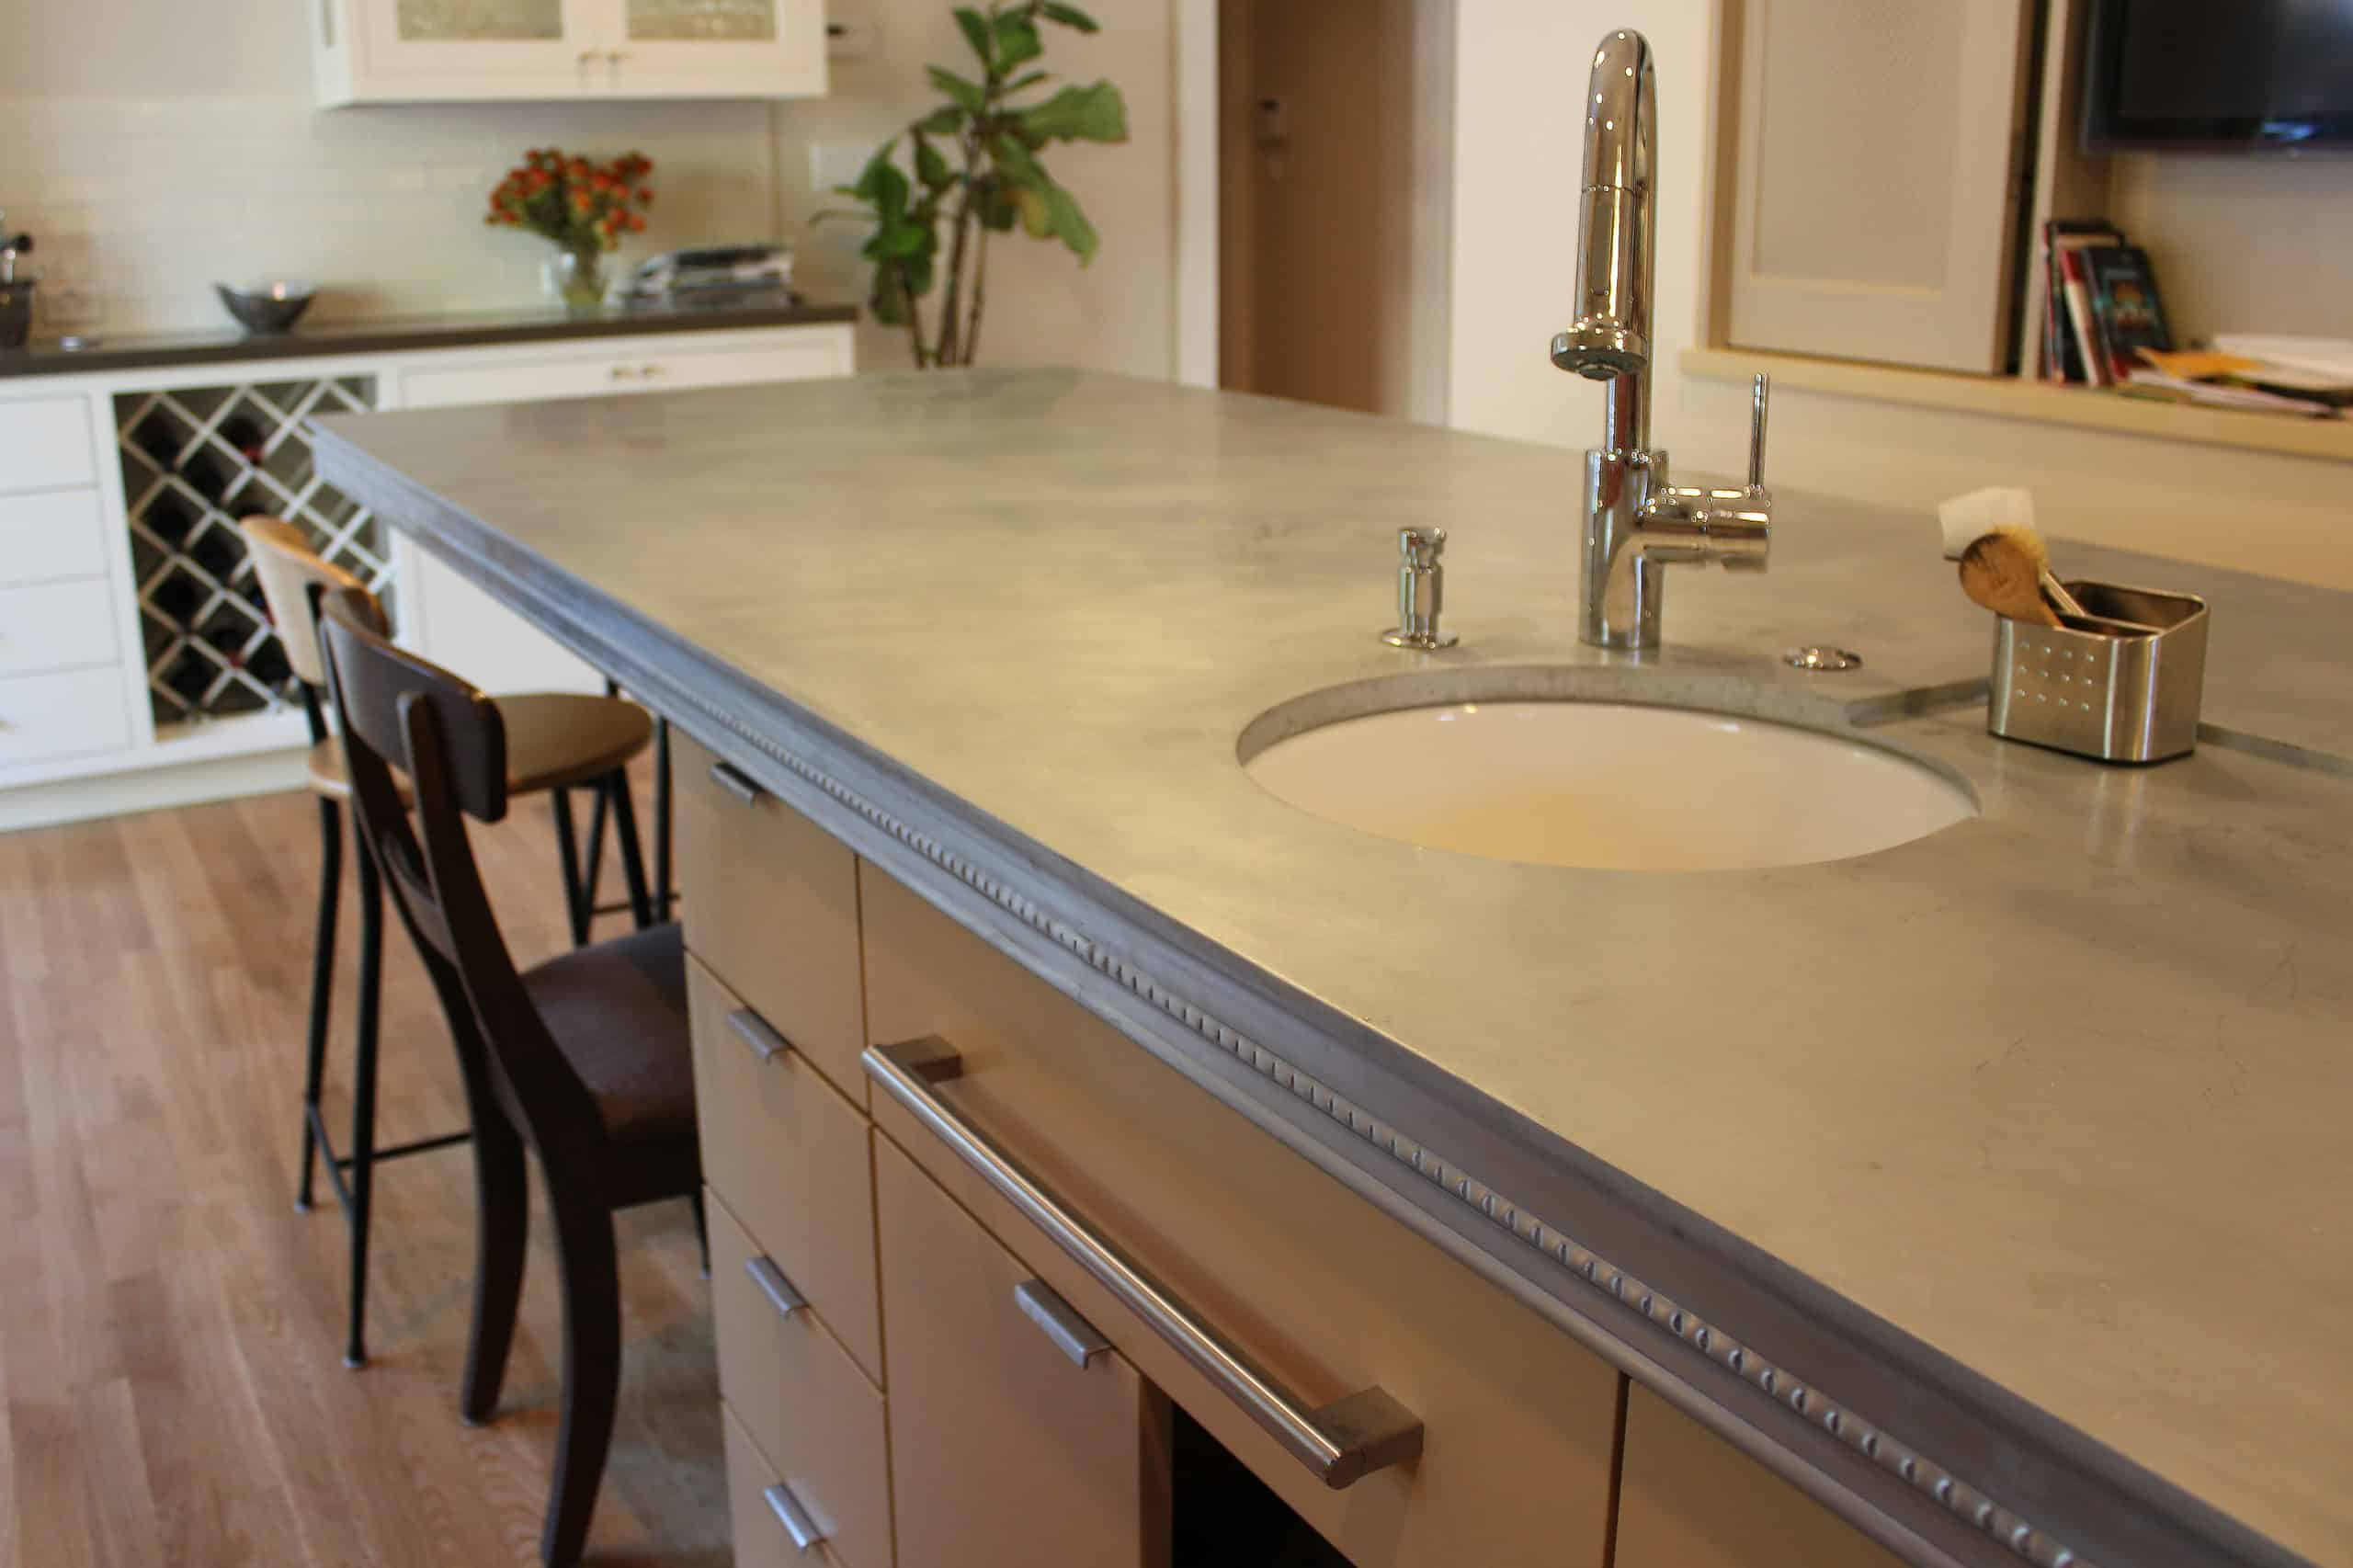 Zinc Countertop kitchen counter ideas